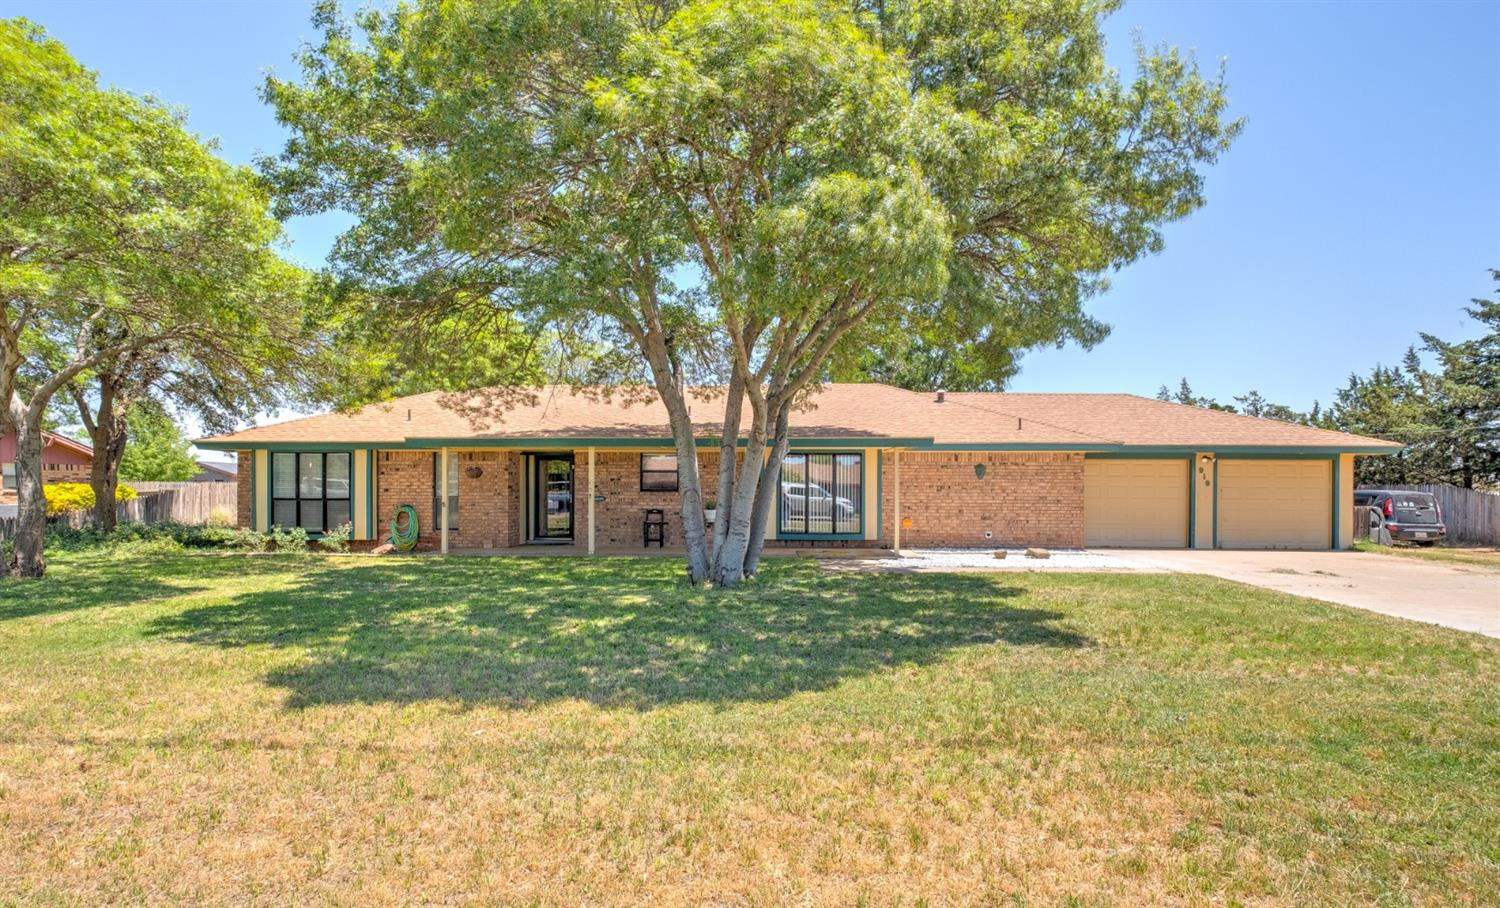 This beautiful ranch style home is located just outside of Levelland.  It is a 3 bedroom 2 bath home.  The large living area is so inviting and the sunroom is an added bonus!  This home sits on almost an acre of land and has a horse barn with 2 stalls, a tack room and corrals.  Call today to see this property!